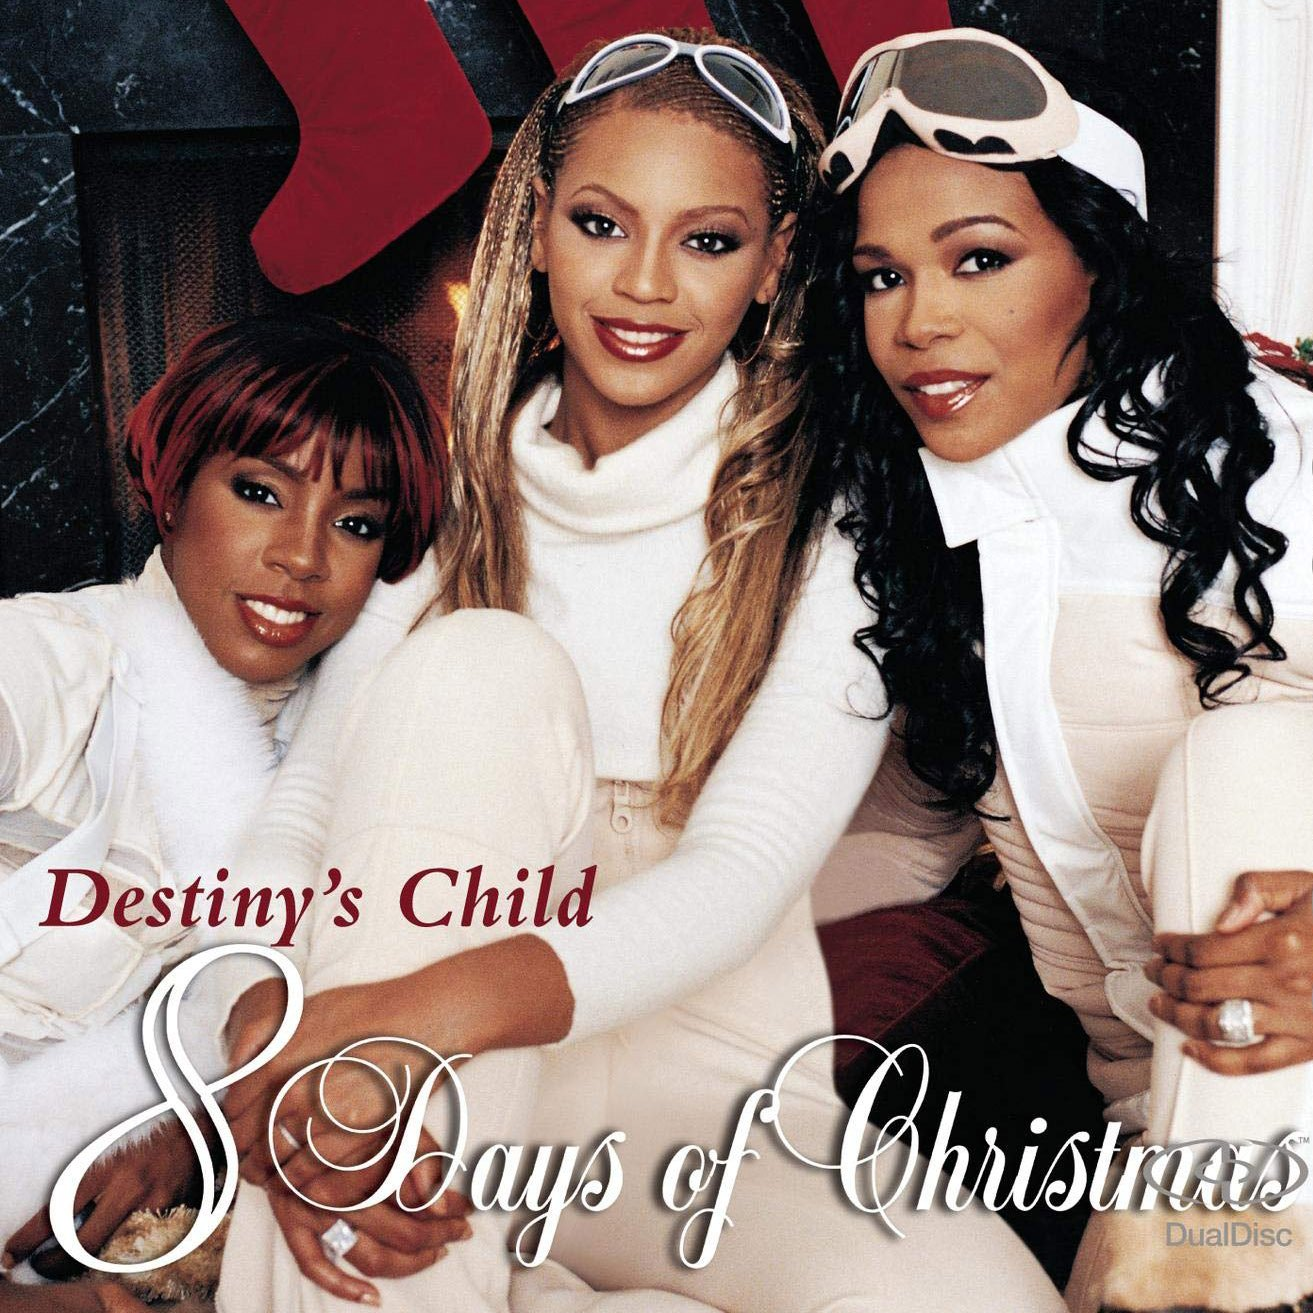 Destiny's Child, 8 Days of Christmas